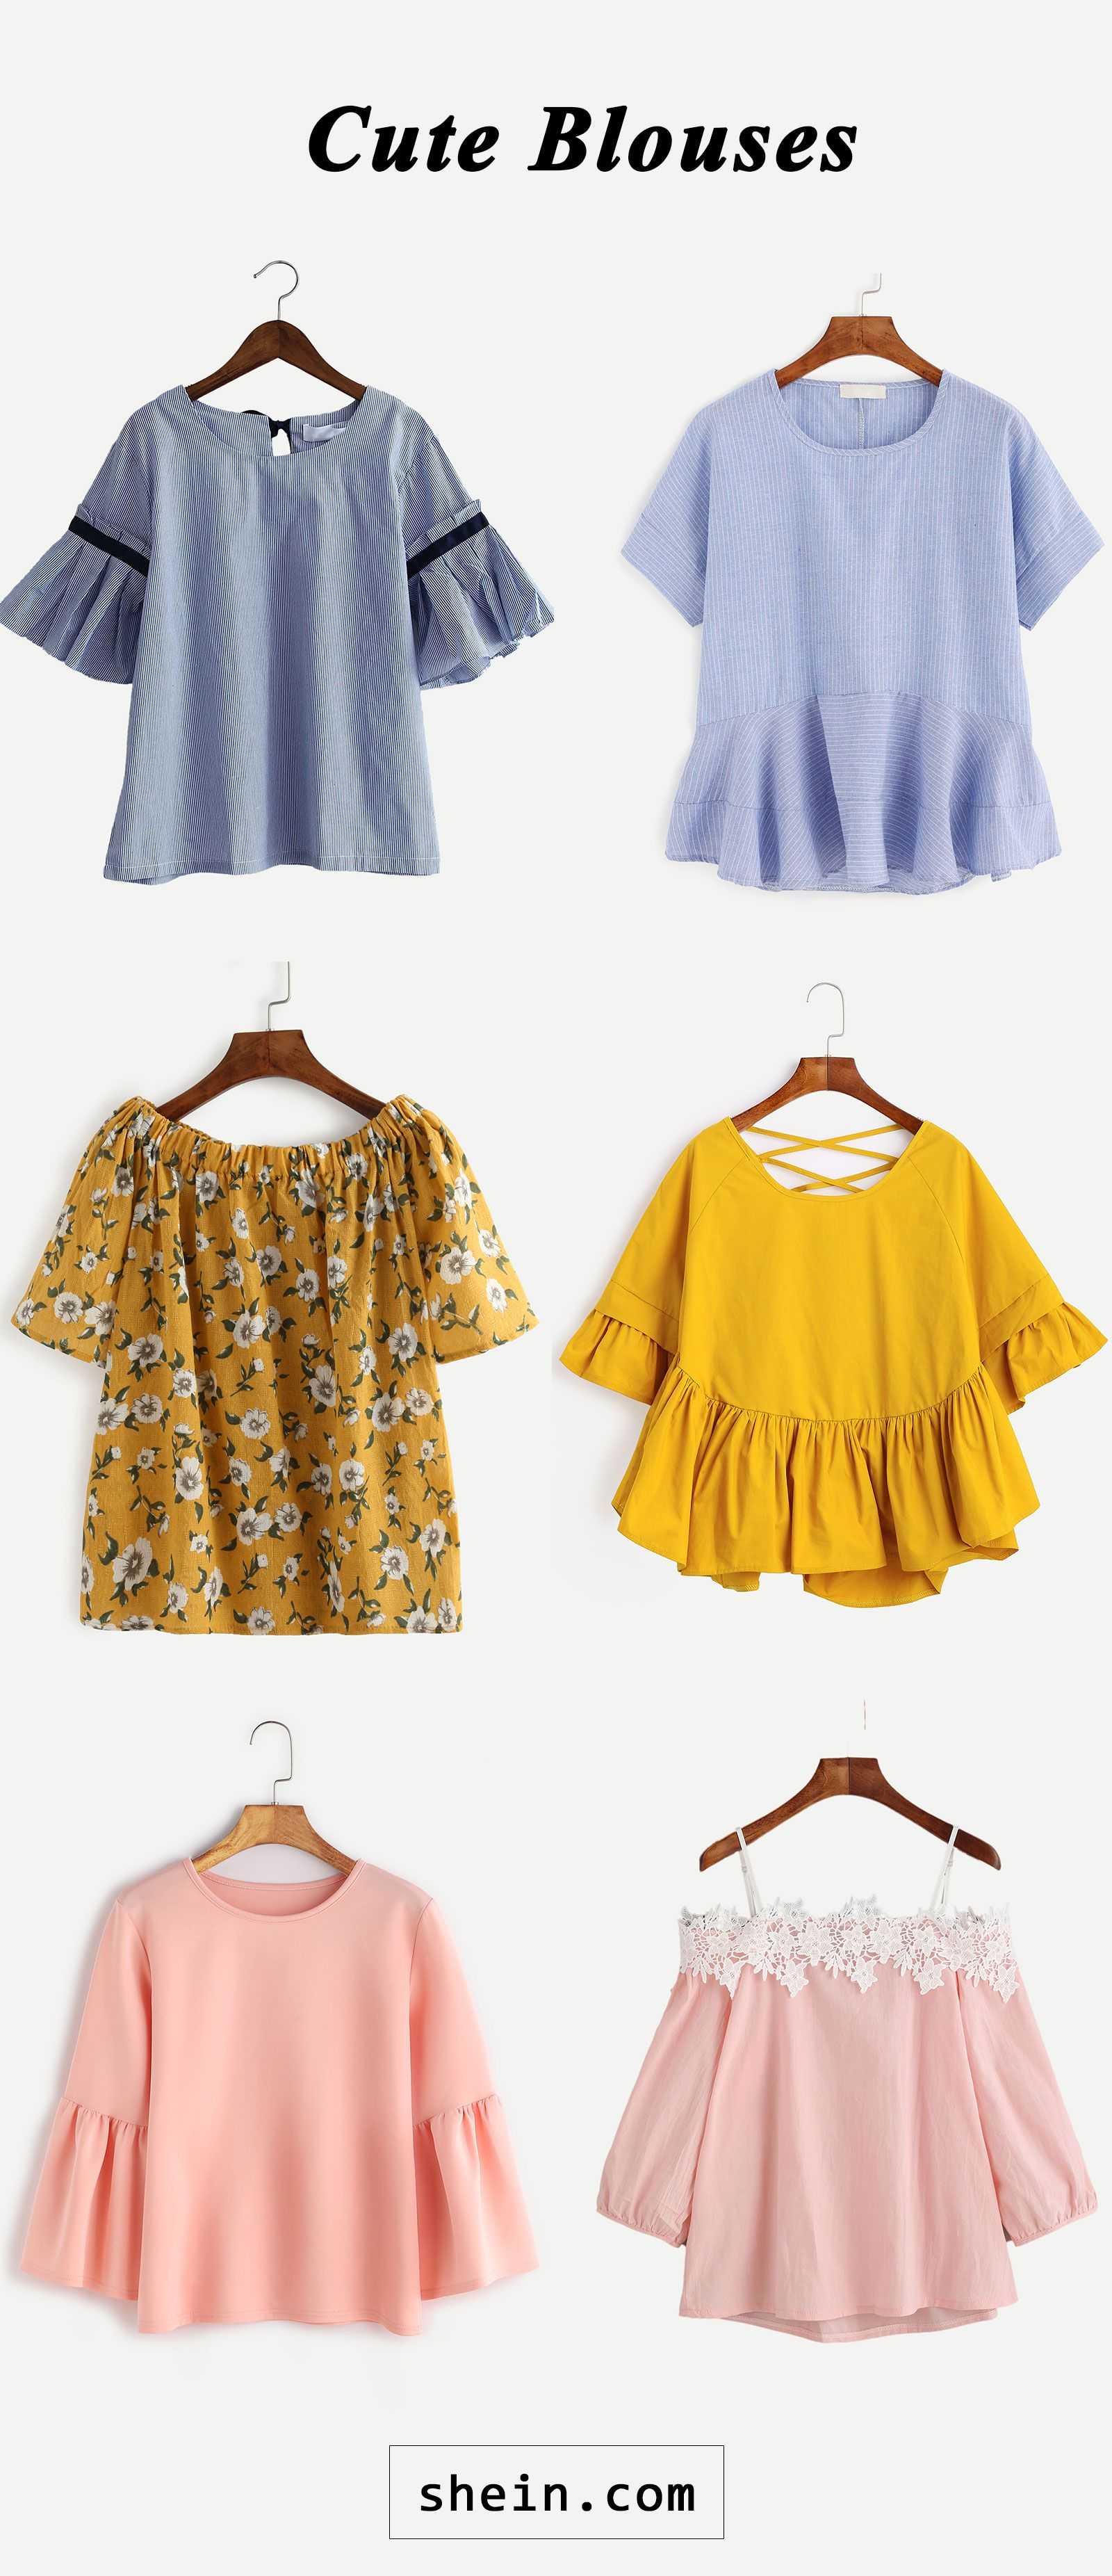 a24a7b5da660 Cheap and cheerful blouses! http://blessfulboutique.com/ Cute Cheap Shirts